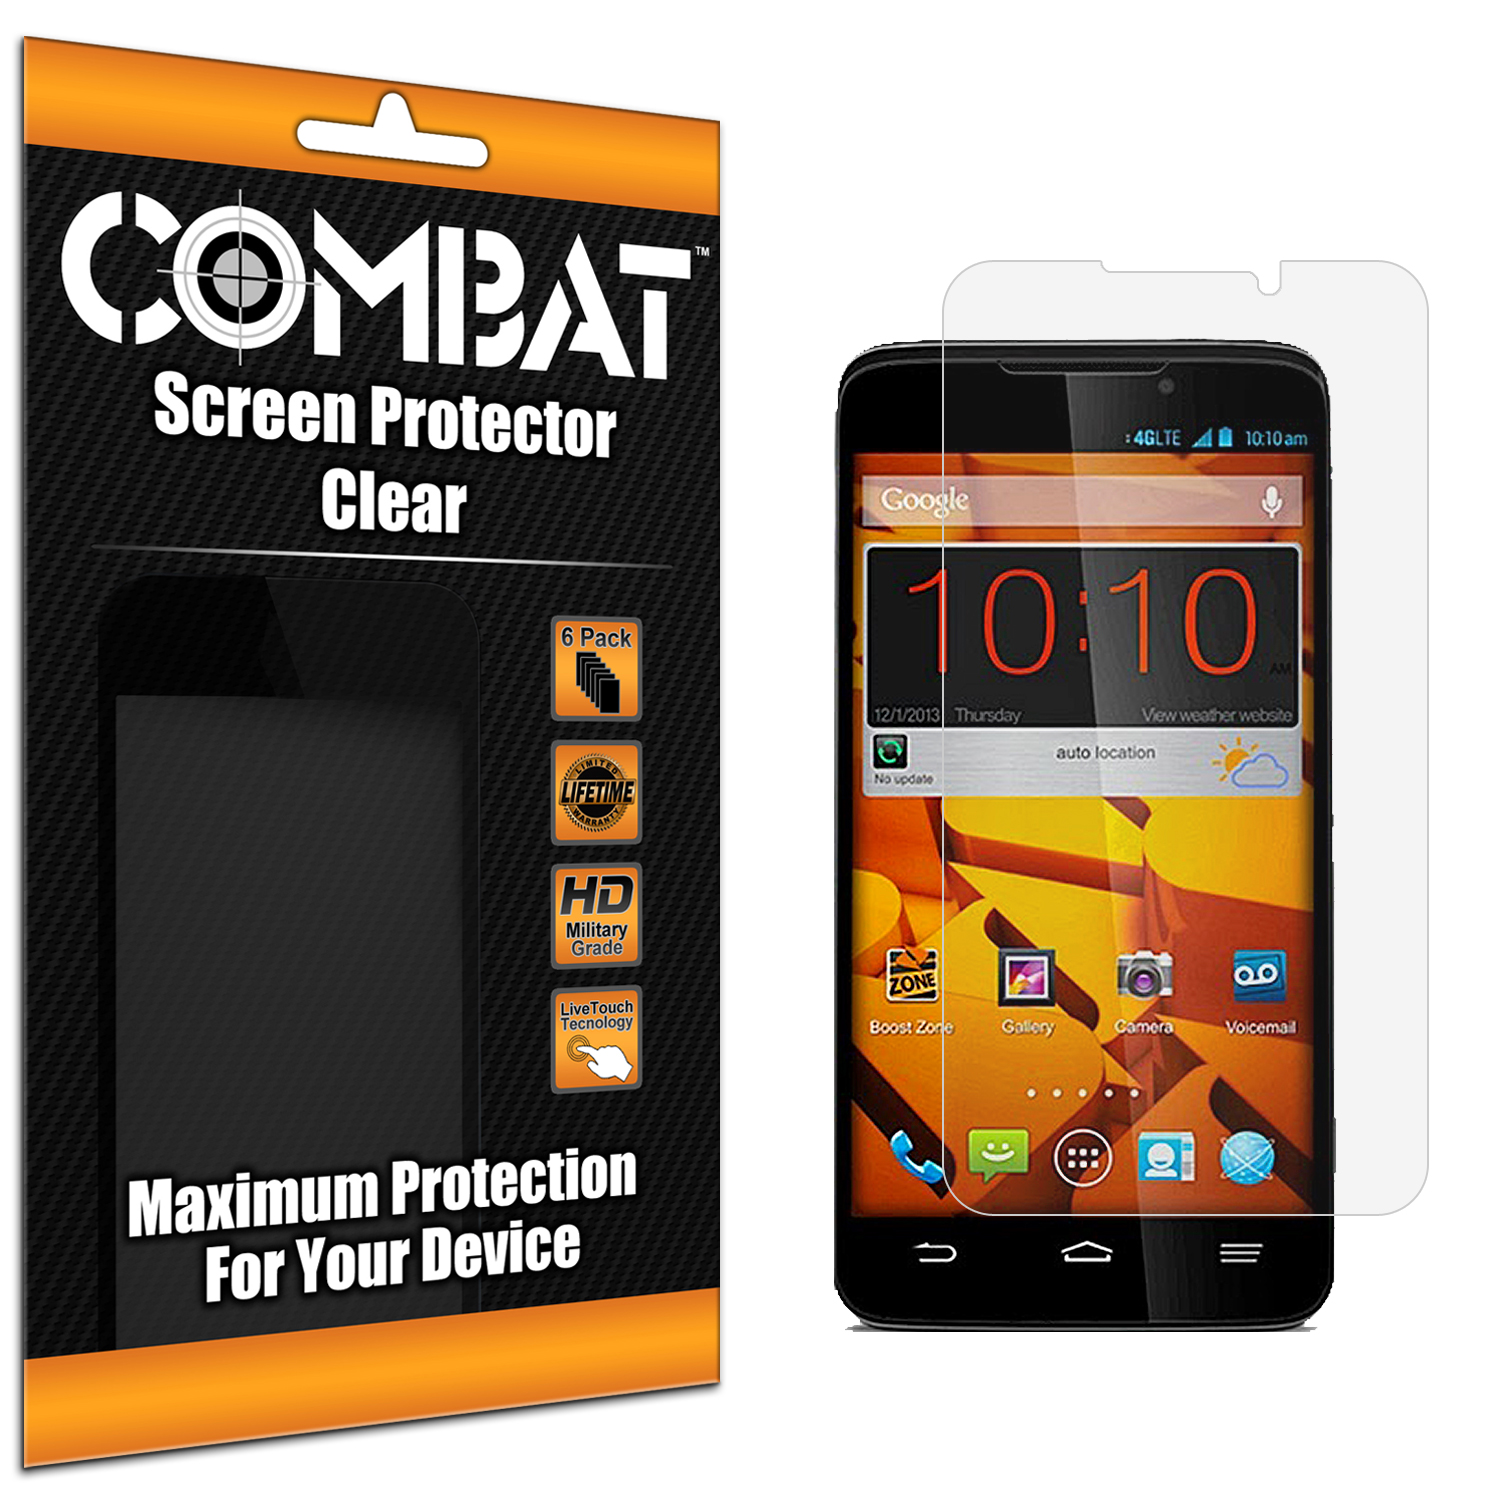 ZTE Boost Mobile Max N9520 Combat 6 Pack HD Clear Screen Protector